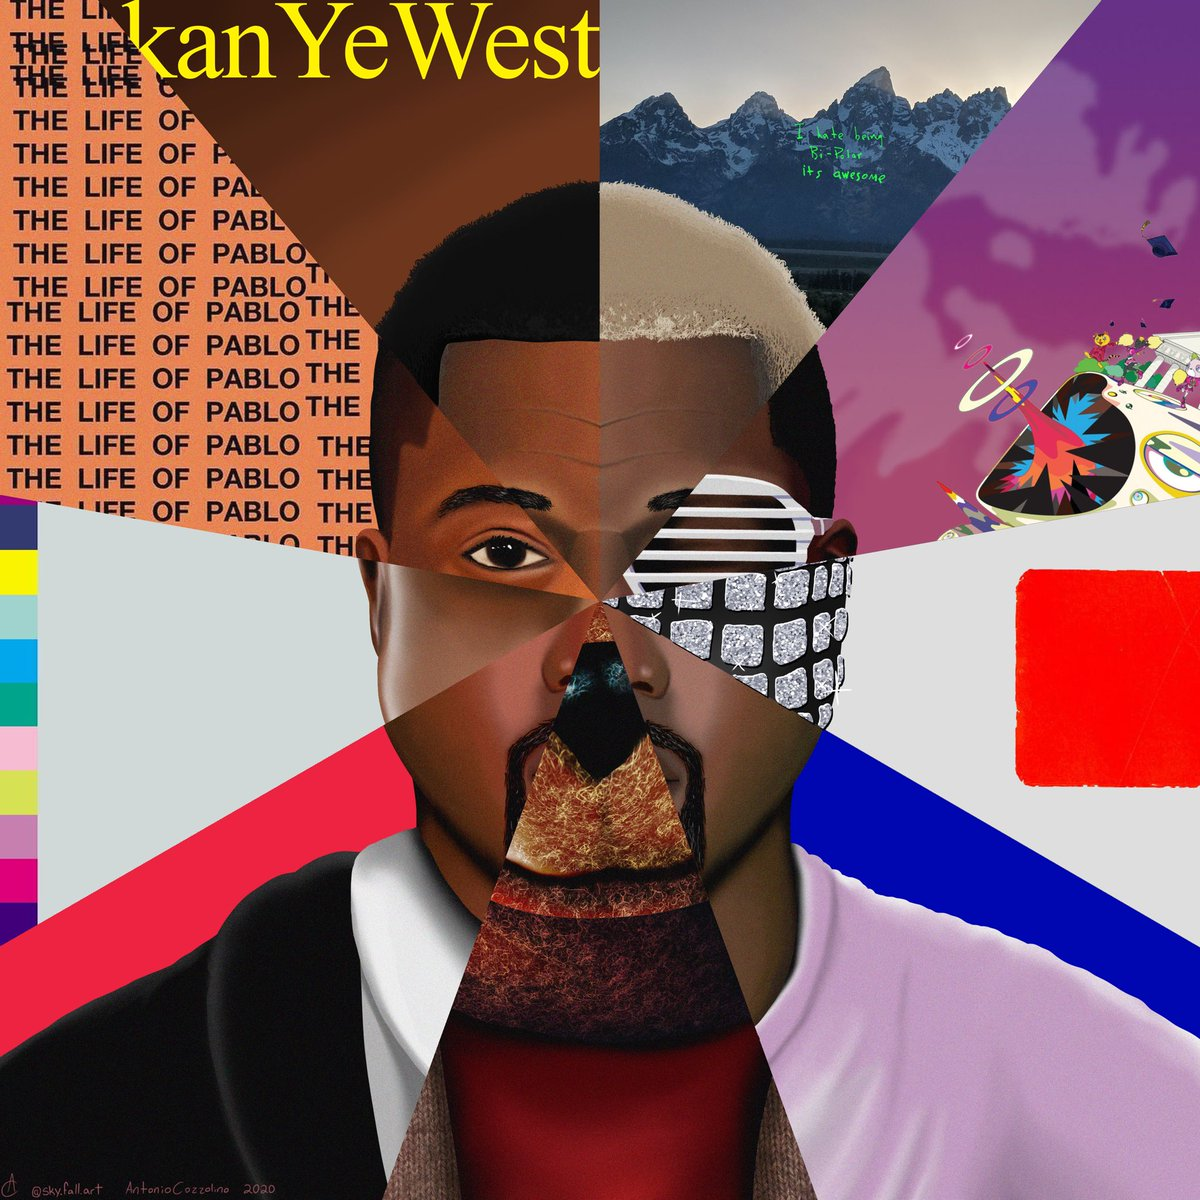 "ALRIGHT!! 5 hours of work and i'm finally done. I'm calling this piece ""kanYeWest"" all of his solo projects in one picture. HOPE YALL ENJOY THIS ONE. ♥️ @kanyewest @KimKardashian"